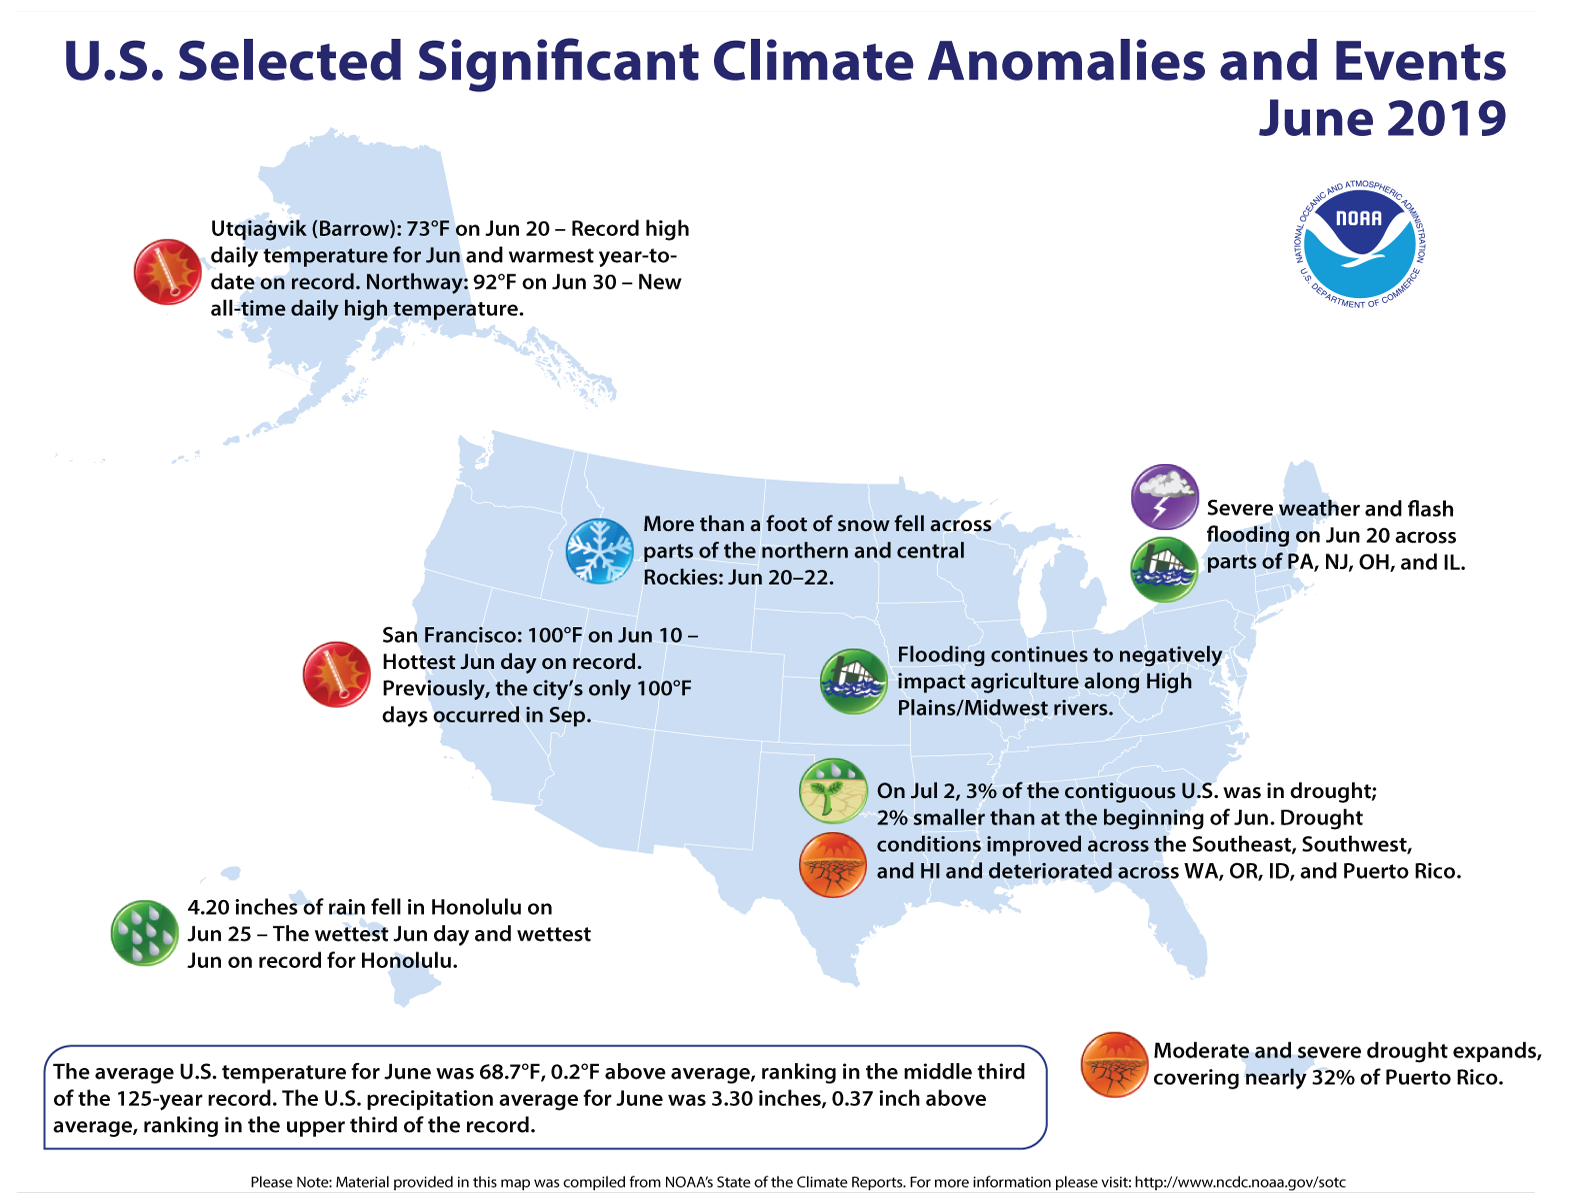 April Extreme Weather/Climate Events